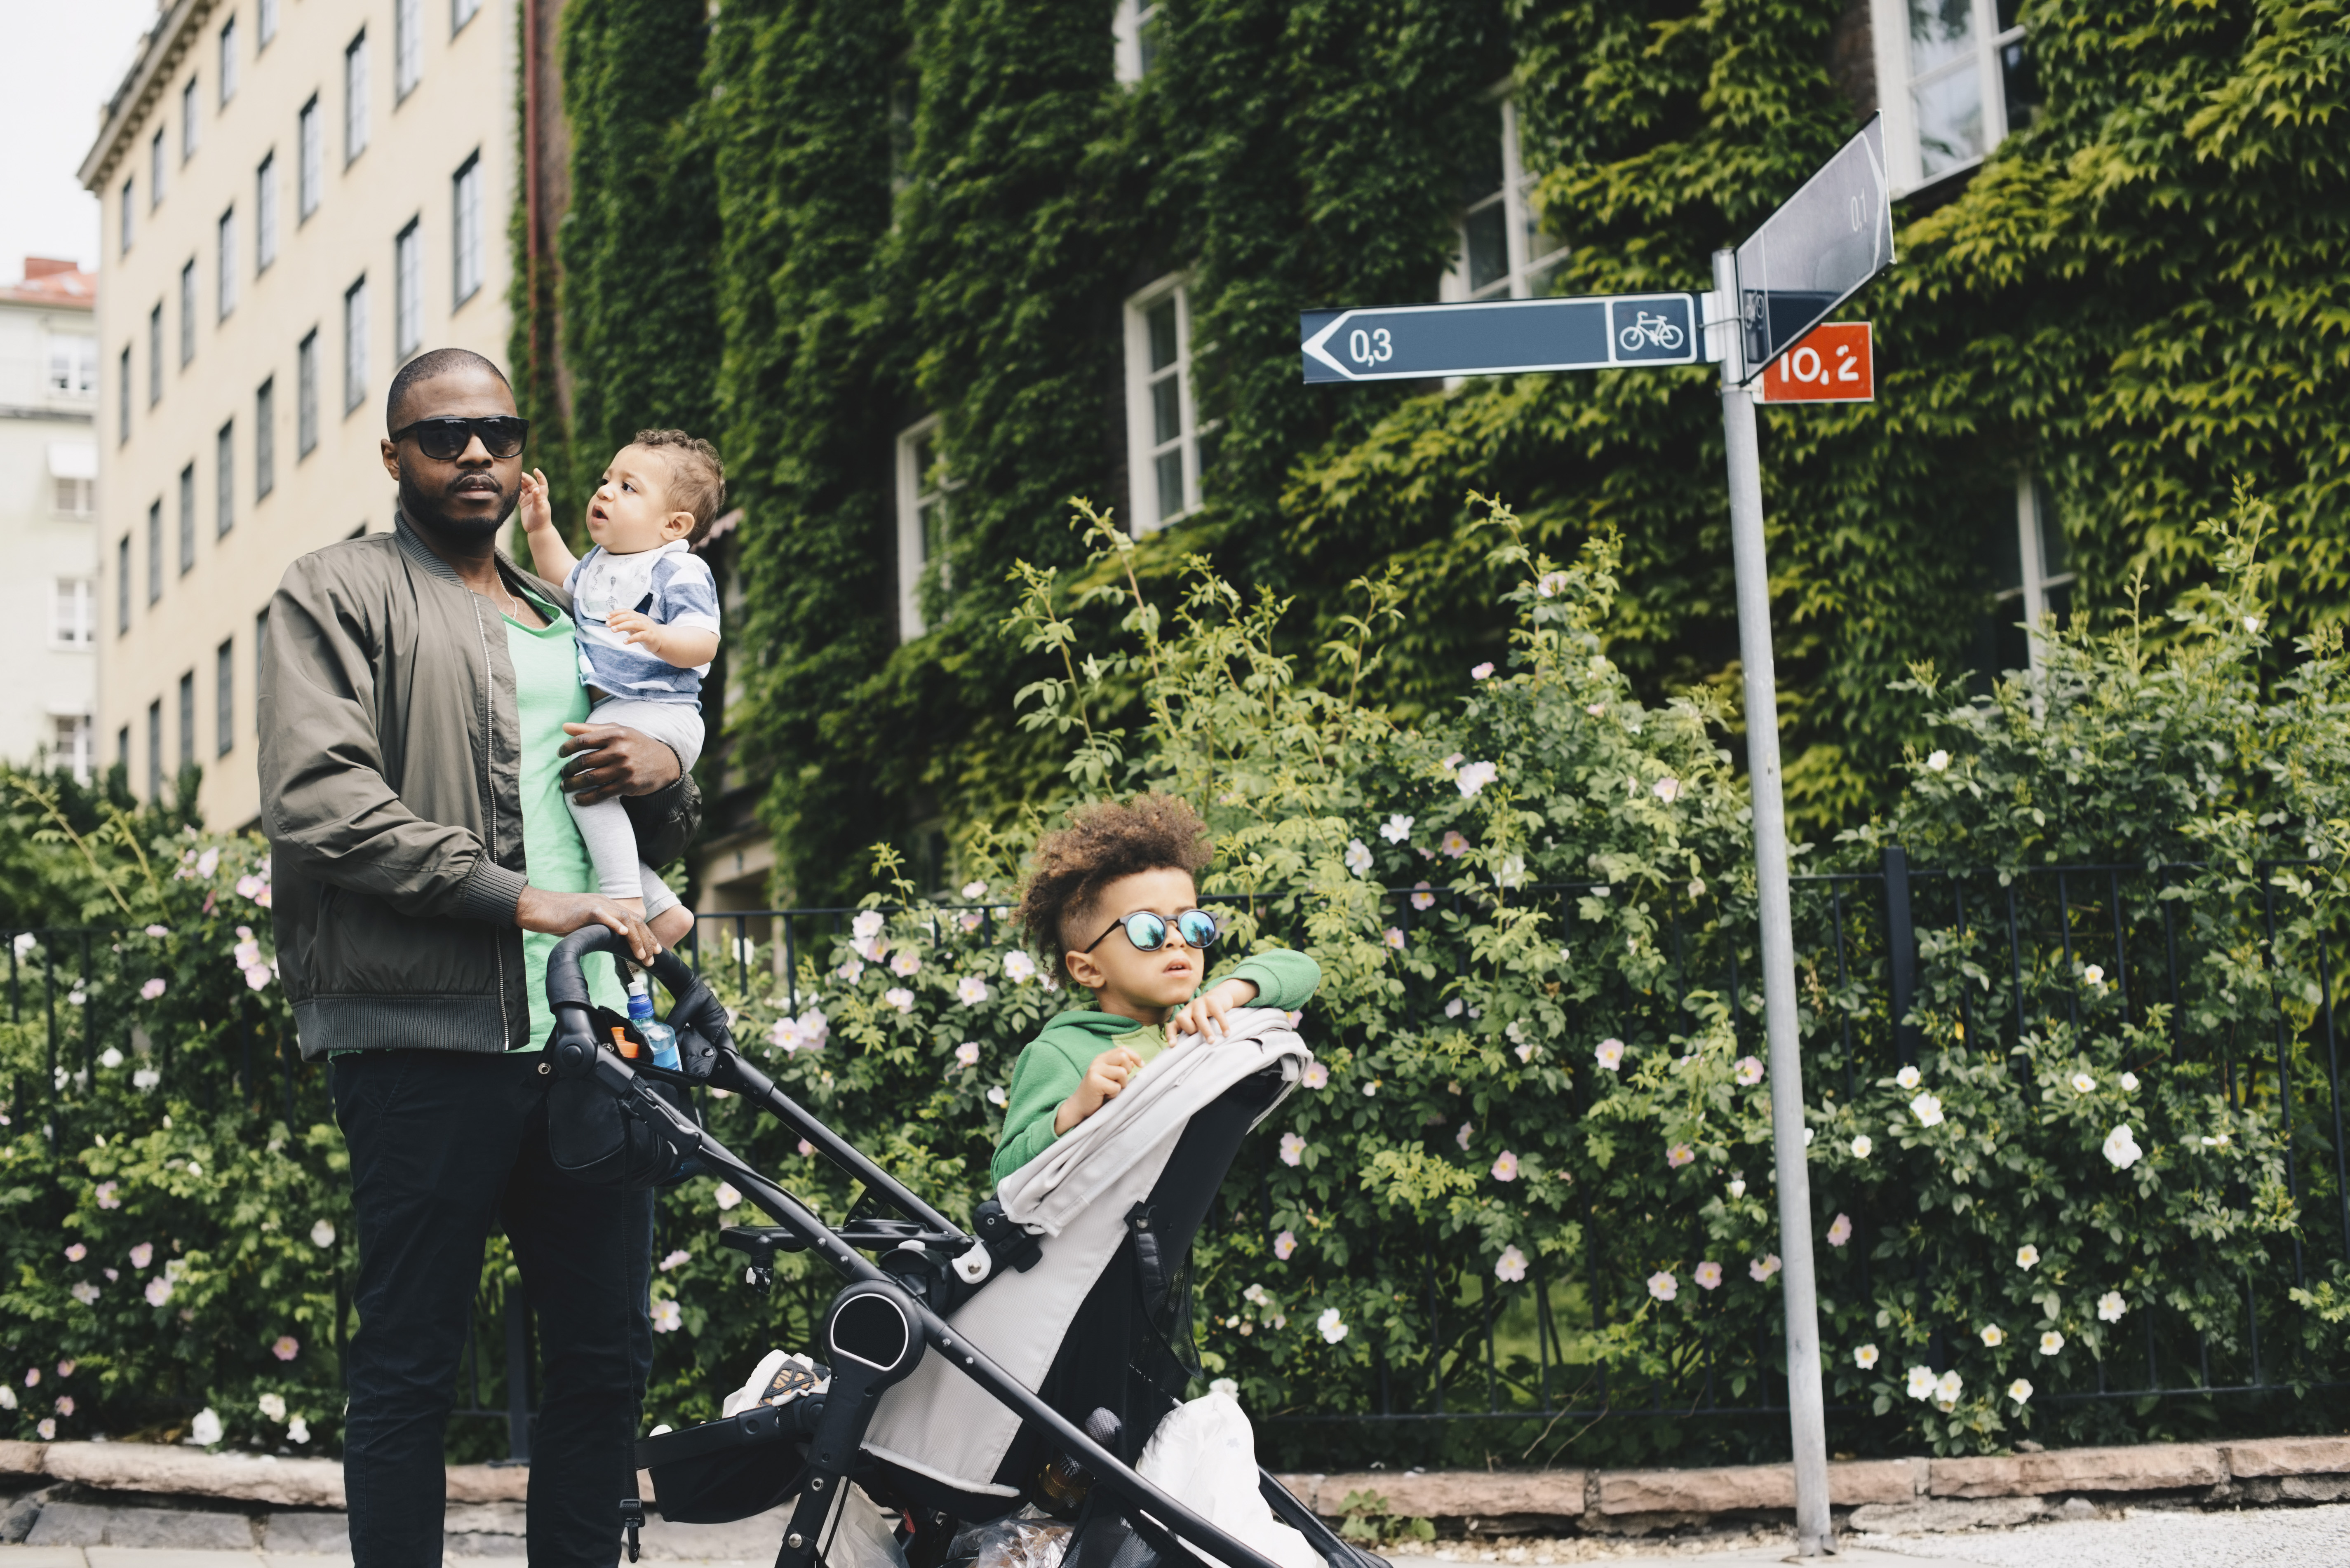 Father walking with children while pushing baby stroller against plants in city